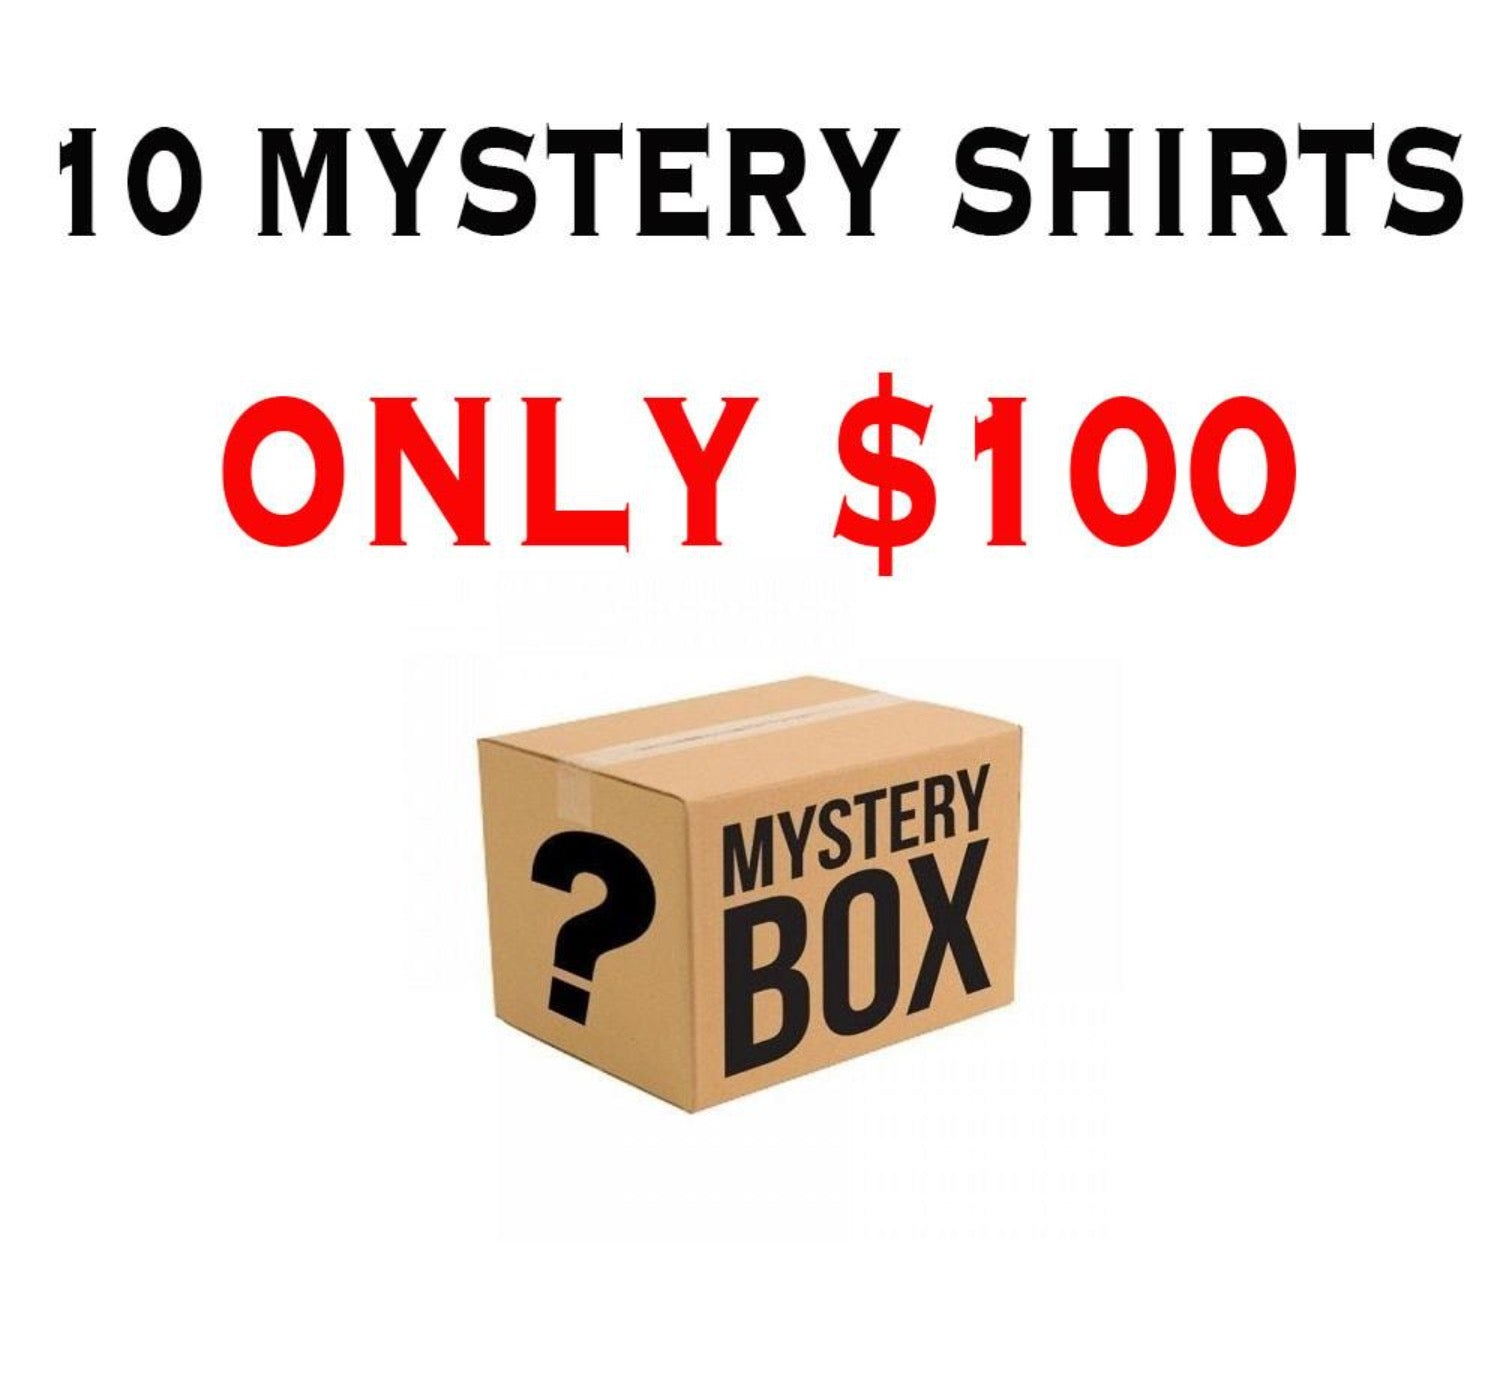 SNEAKER TEES MYSTERY | 10 SHIRTS - $100